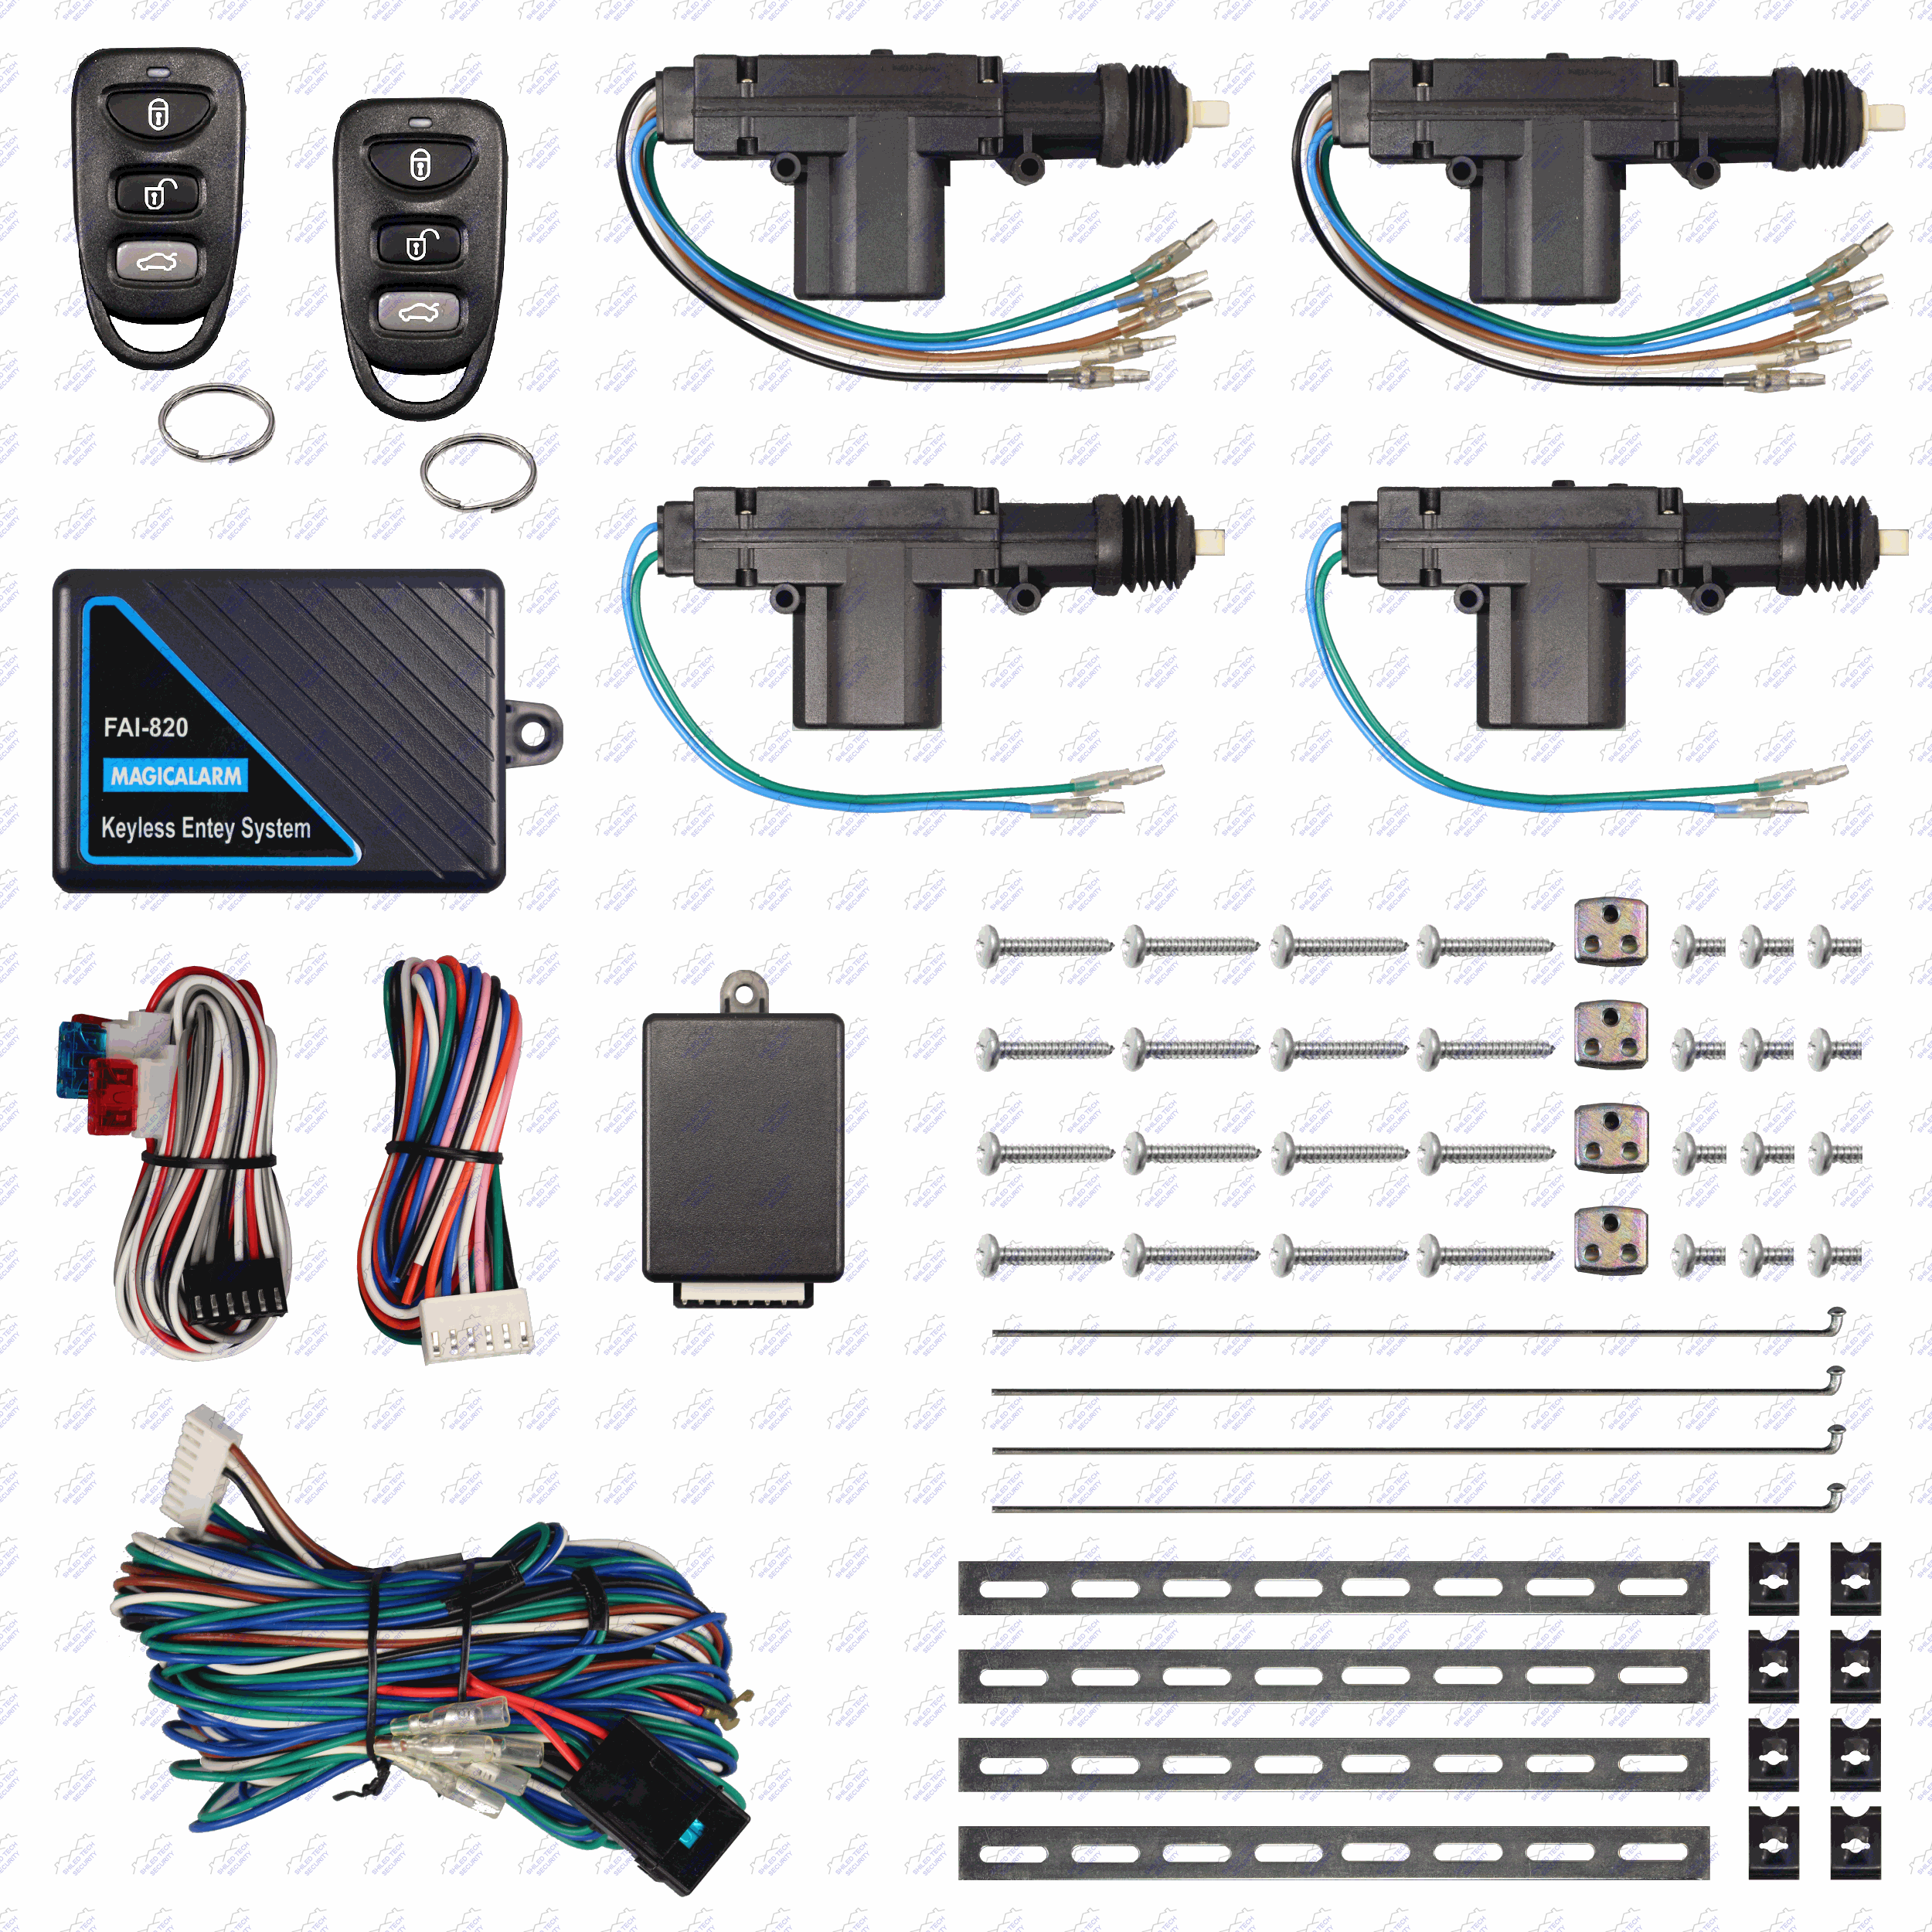 Remote Keyless Entry System 4 Door Power Lock Heavy Duty Actuator 1989 Oldsmobile Cutlass Supreme 28l Under Driver Dash Fuse Box Diagram Enlarged Photo A B